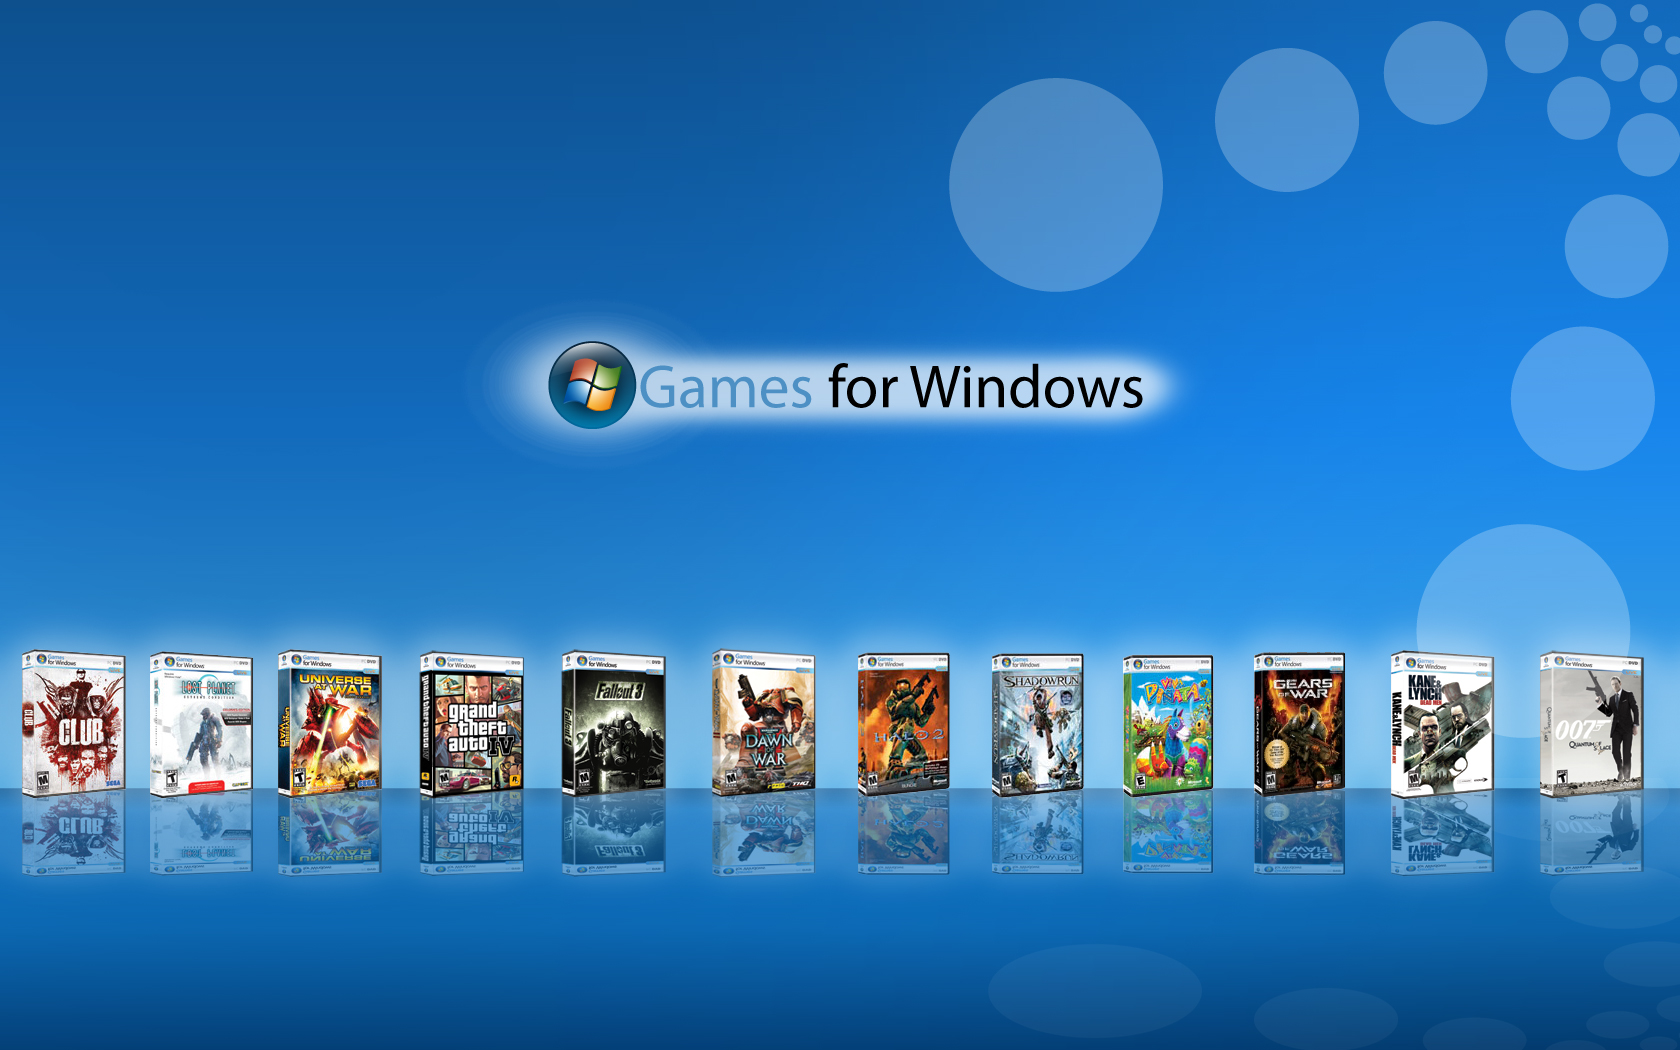 games for windows wallpaper 3 by thewax fan art wallpaper games 2009 1680x1050